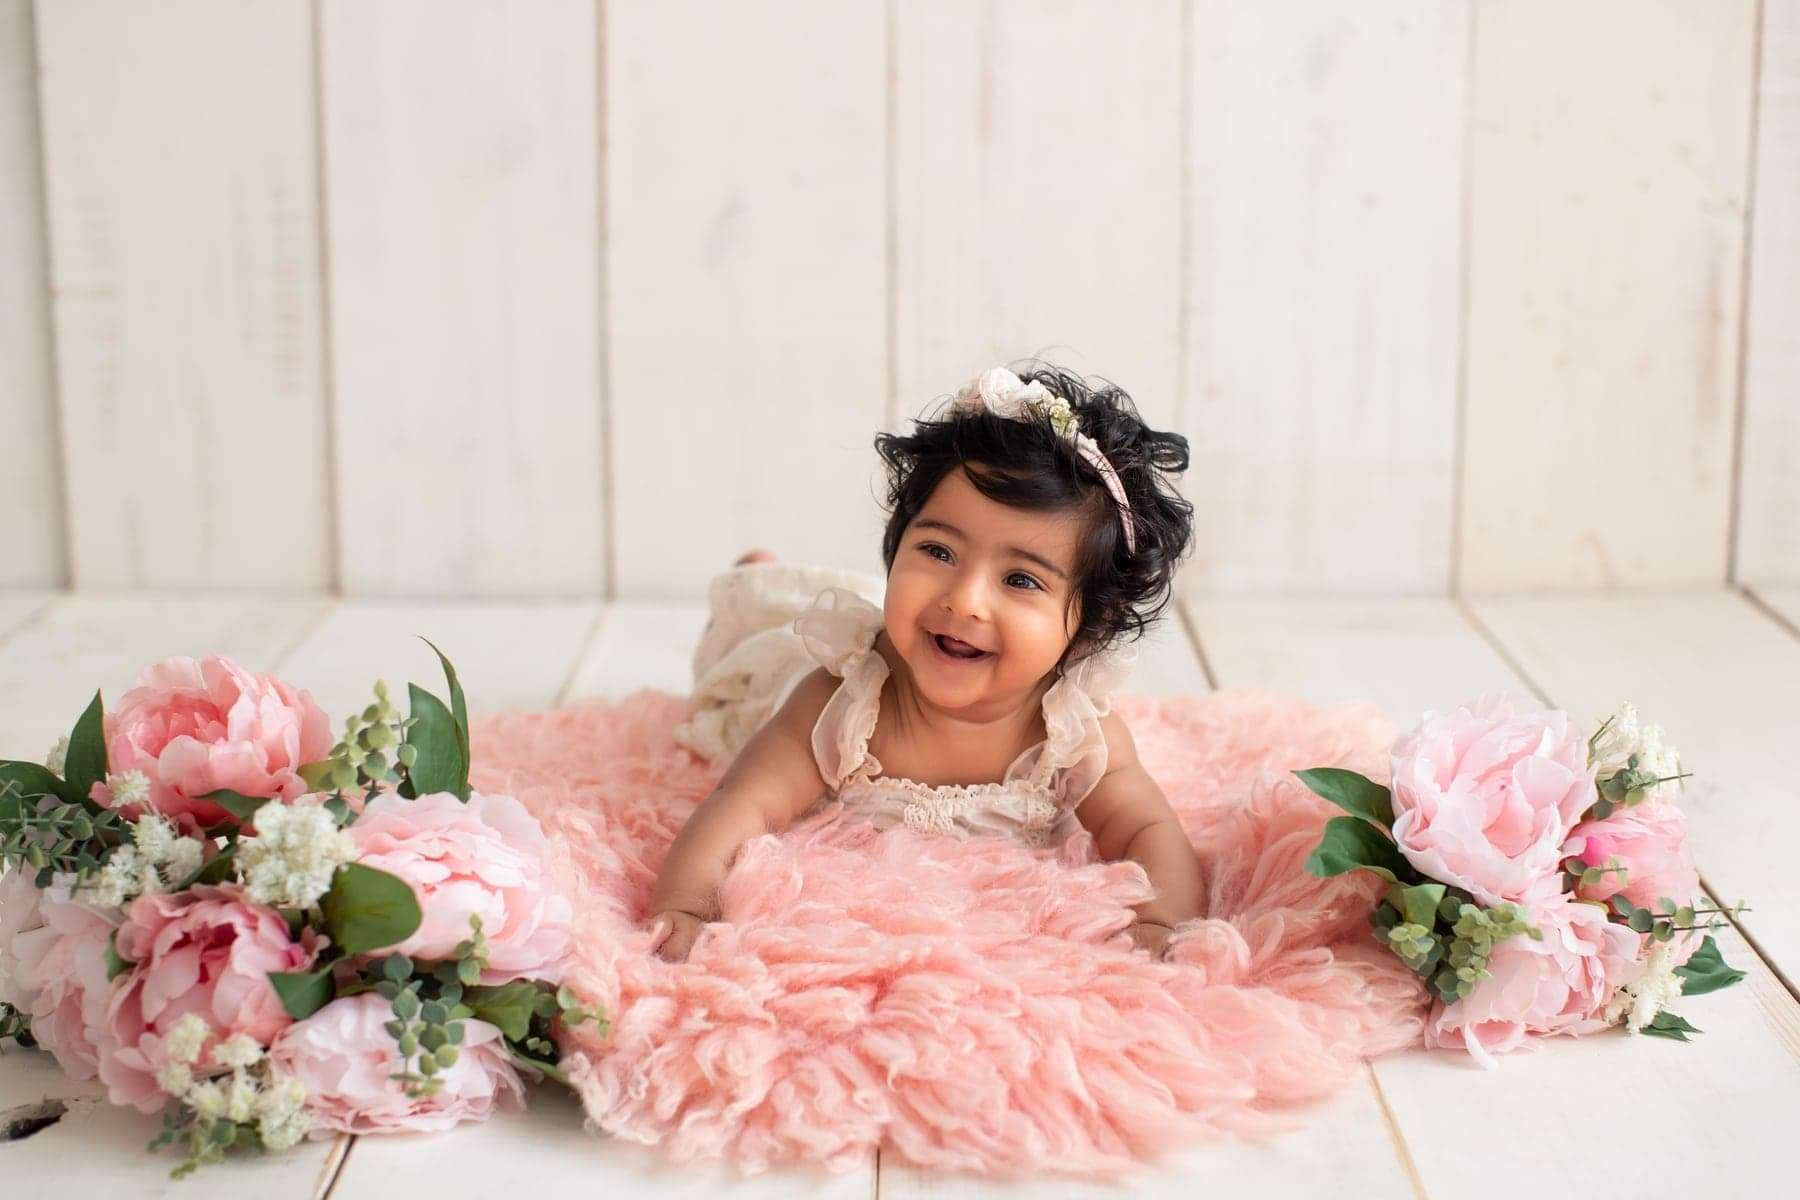 40904-white-wooden-background-pink-floral-baby-photography-delhi-4-5-6-months-baby-girl-photoshoot-gurgaon-anega-bawa